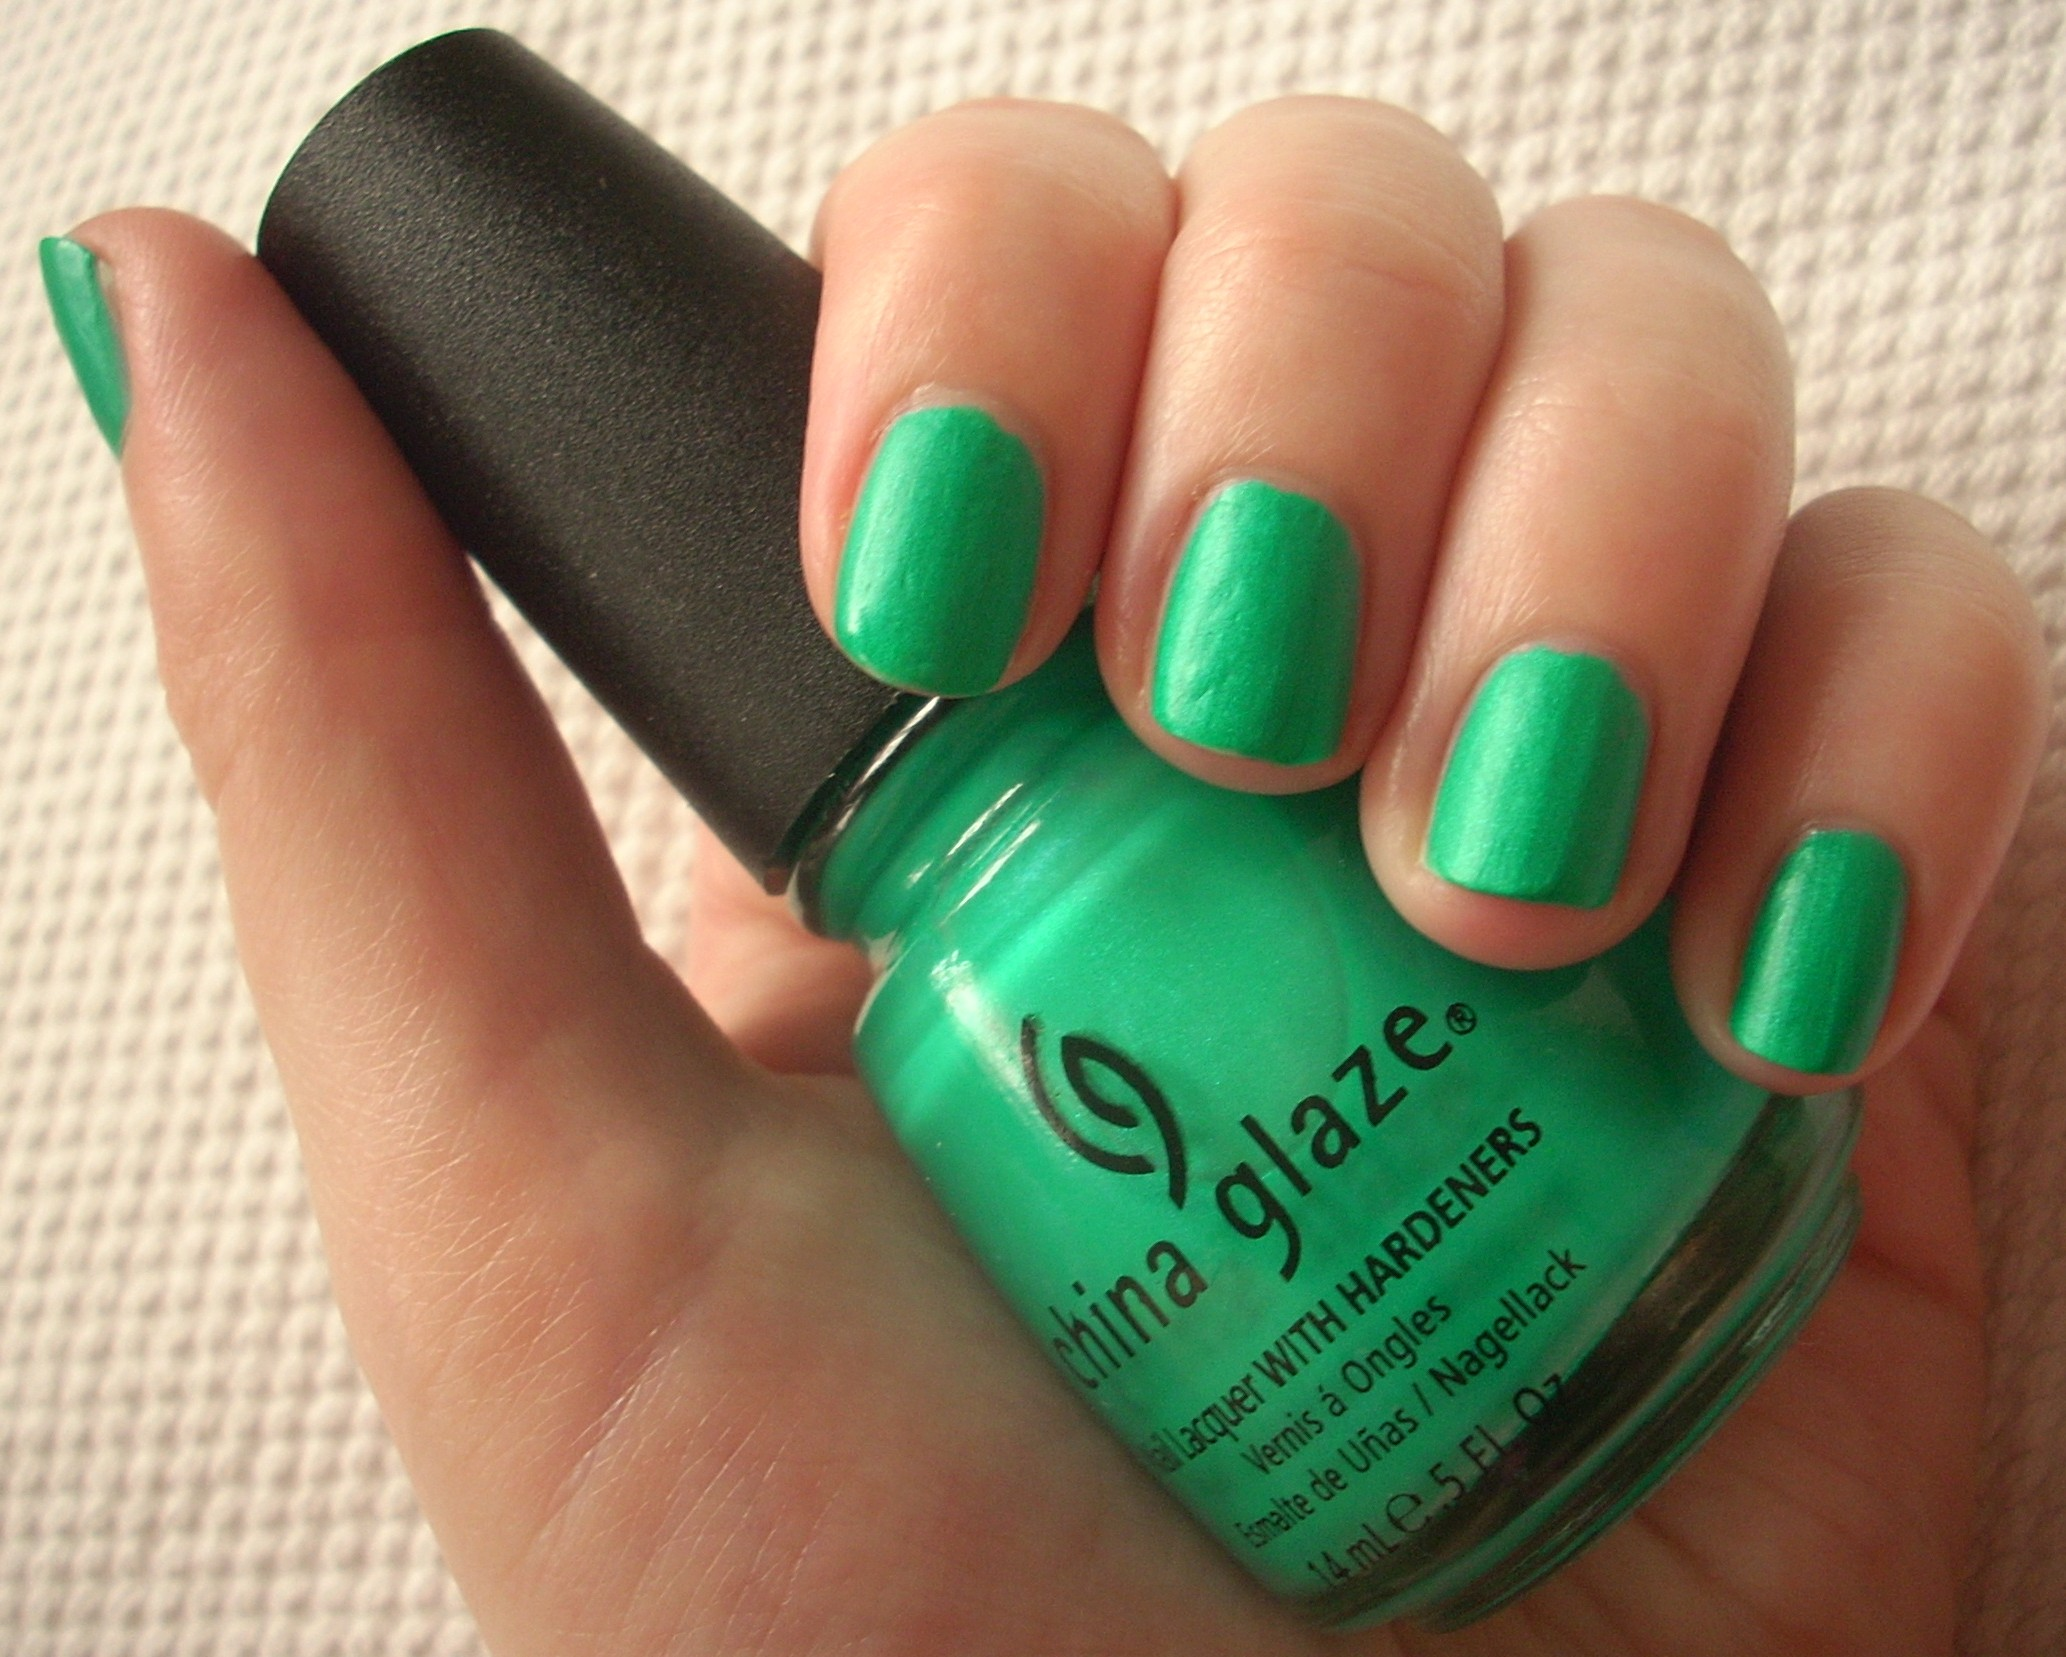 China Glaze Turned Up Turquoise nail polish review | Through The ...